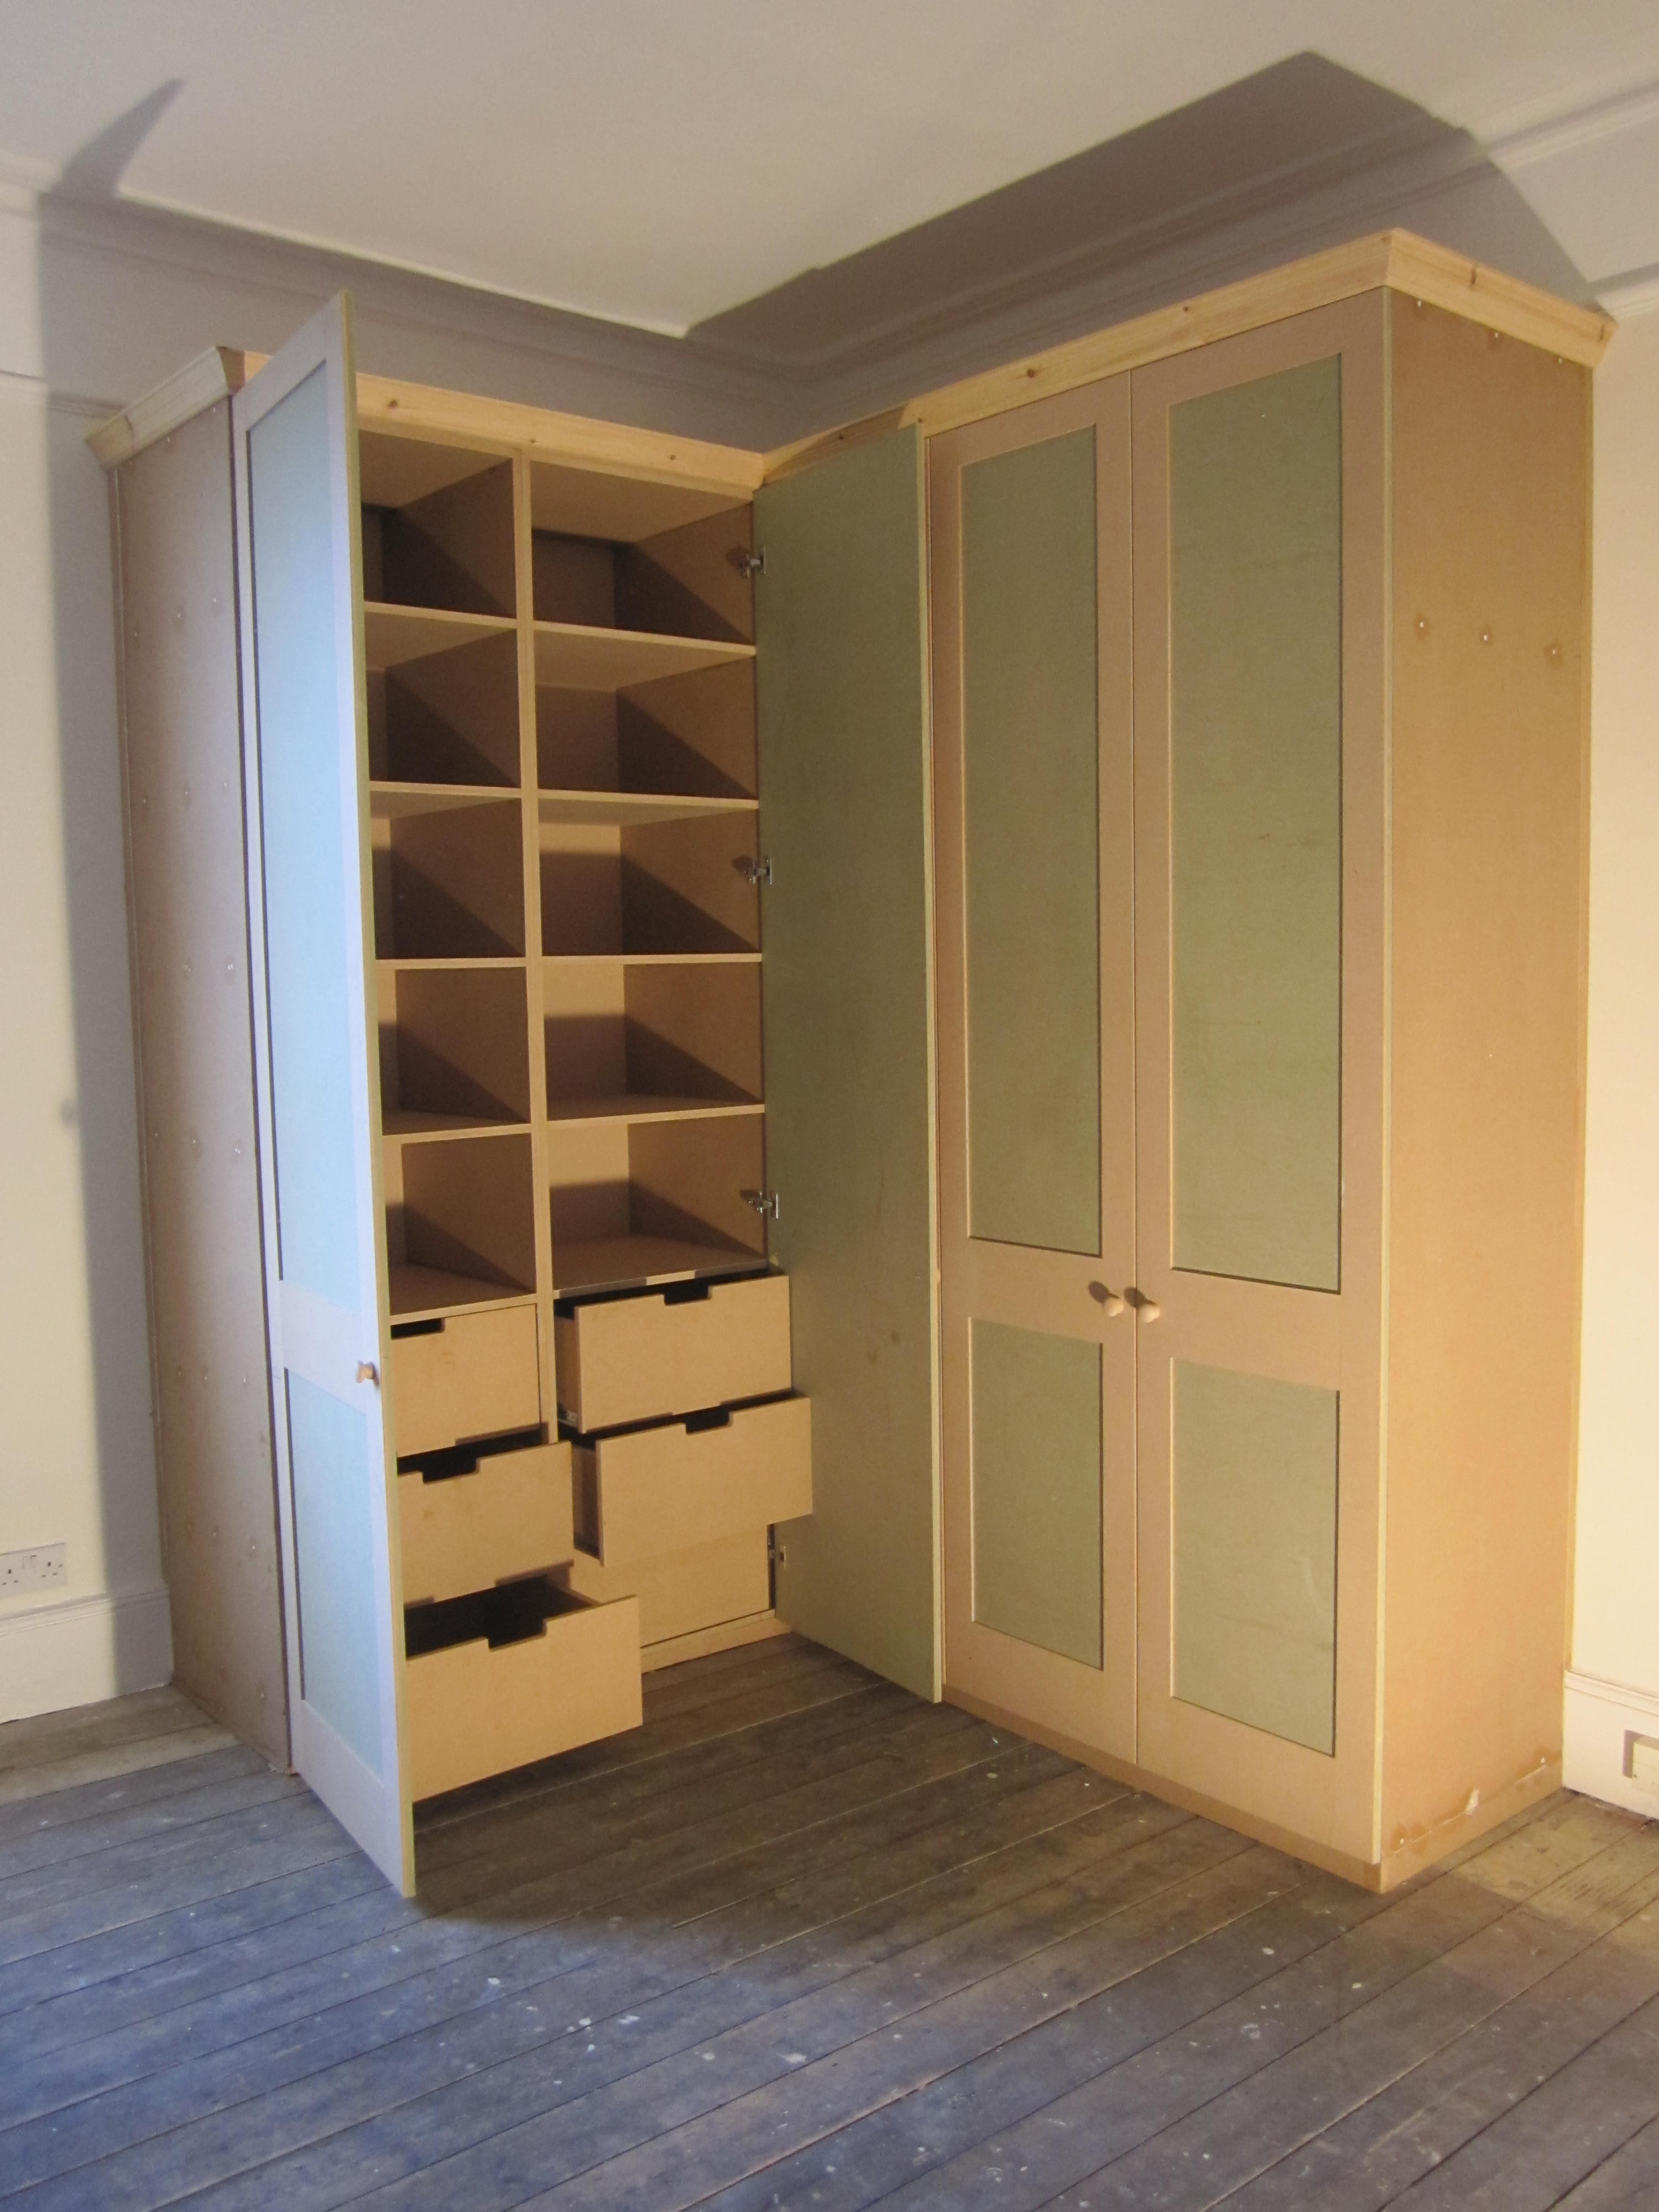 For Idea Of Drawer Shape Only Closets Pinterest Drawers And In Wardrobe With Drawers And Shelves (View 15 of 15)